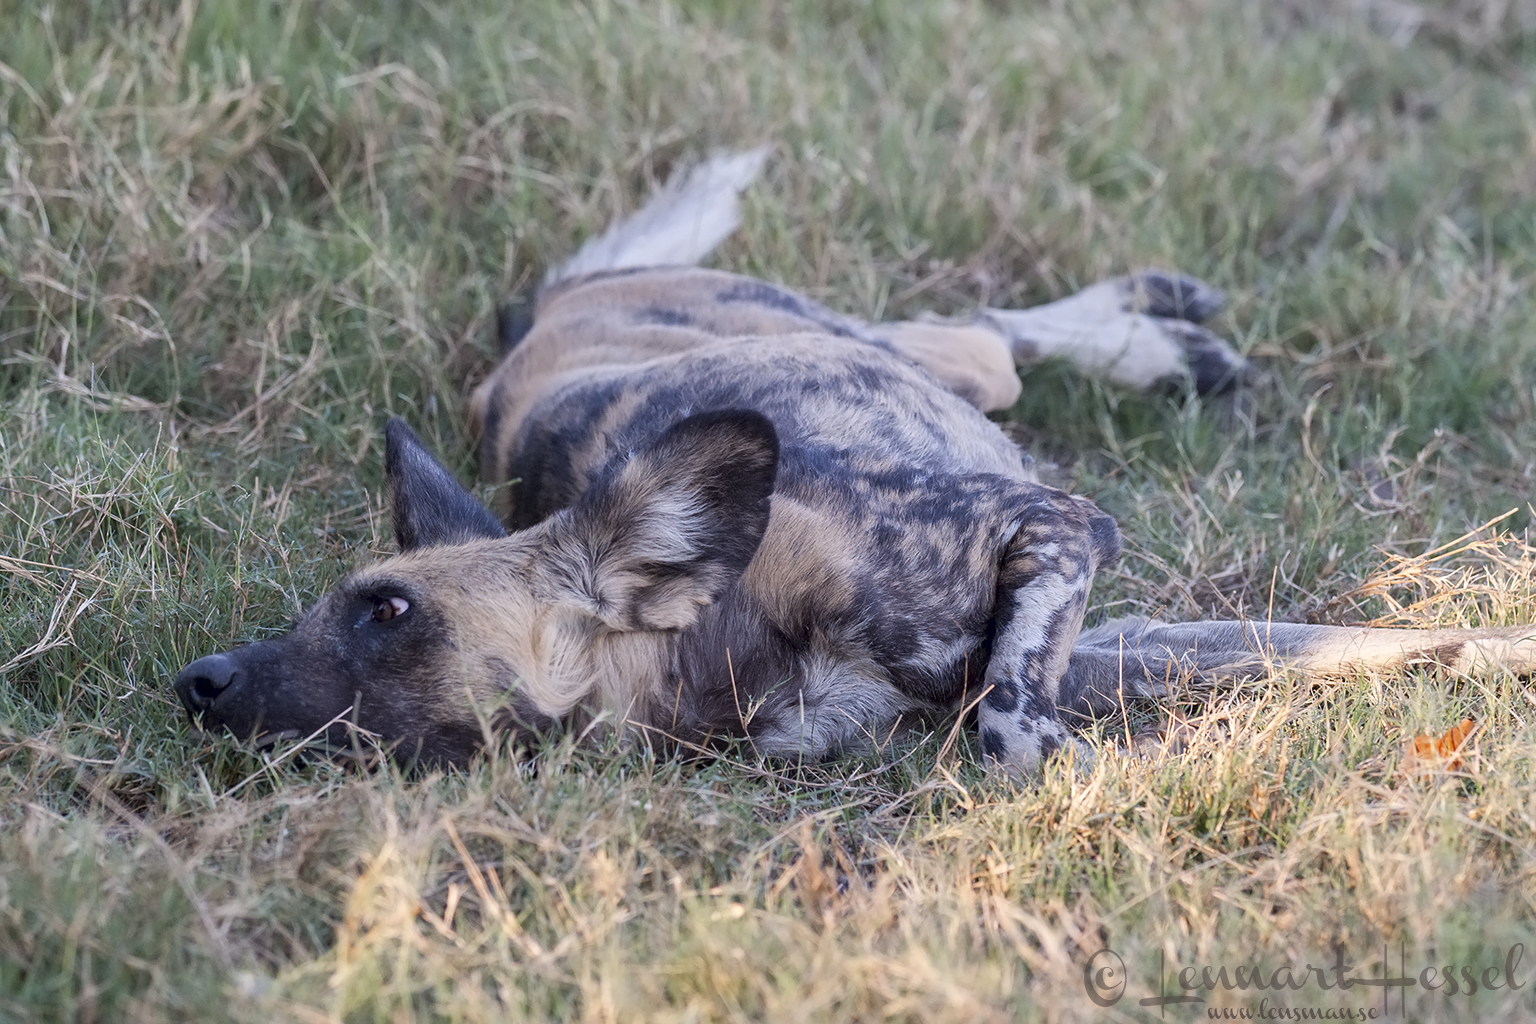 African Wild Dog in Moremi Game Reserve, Botswana - animal